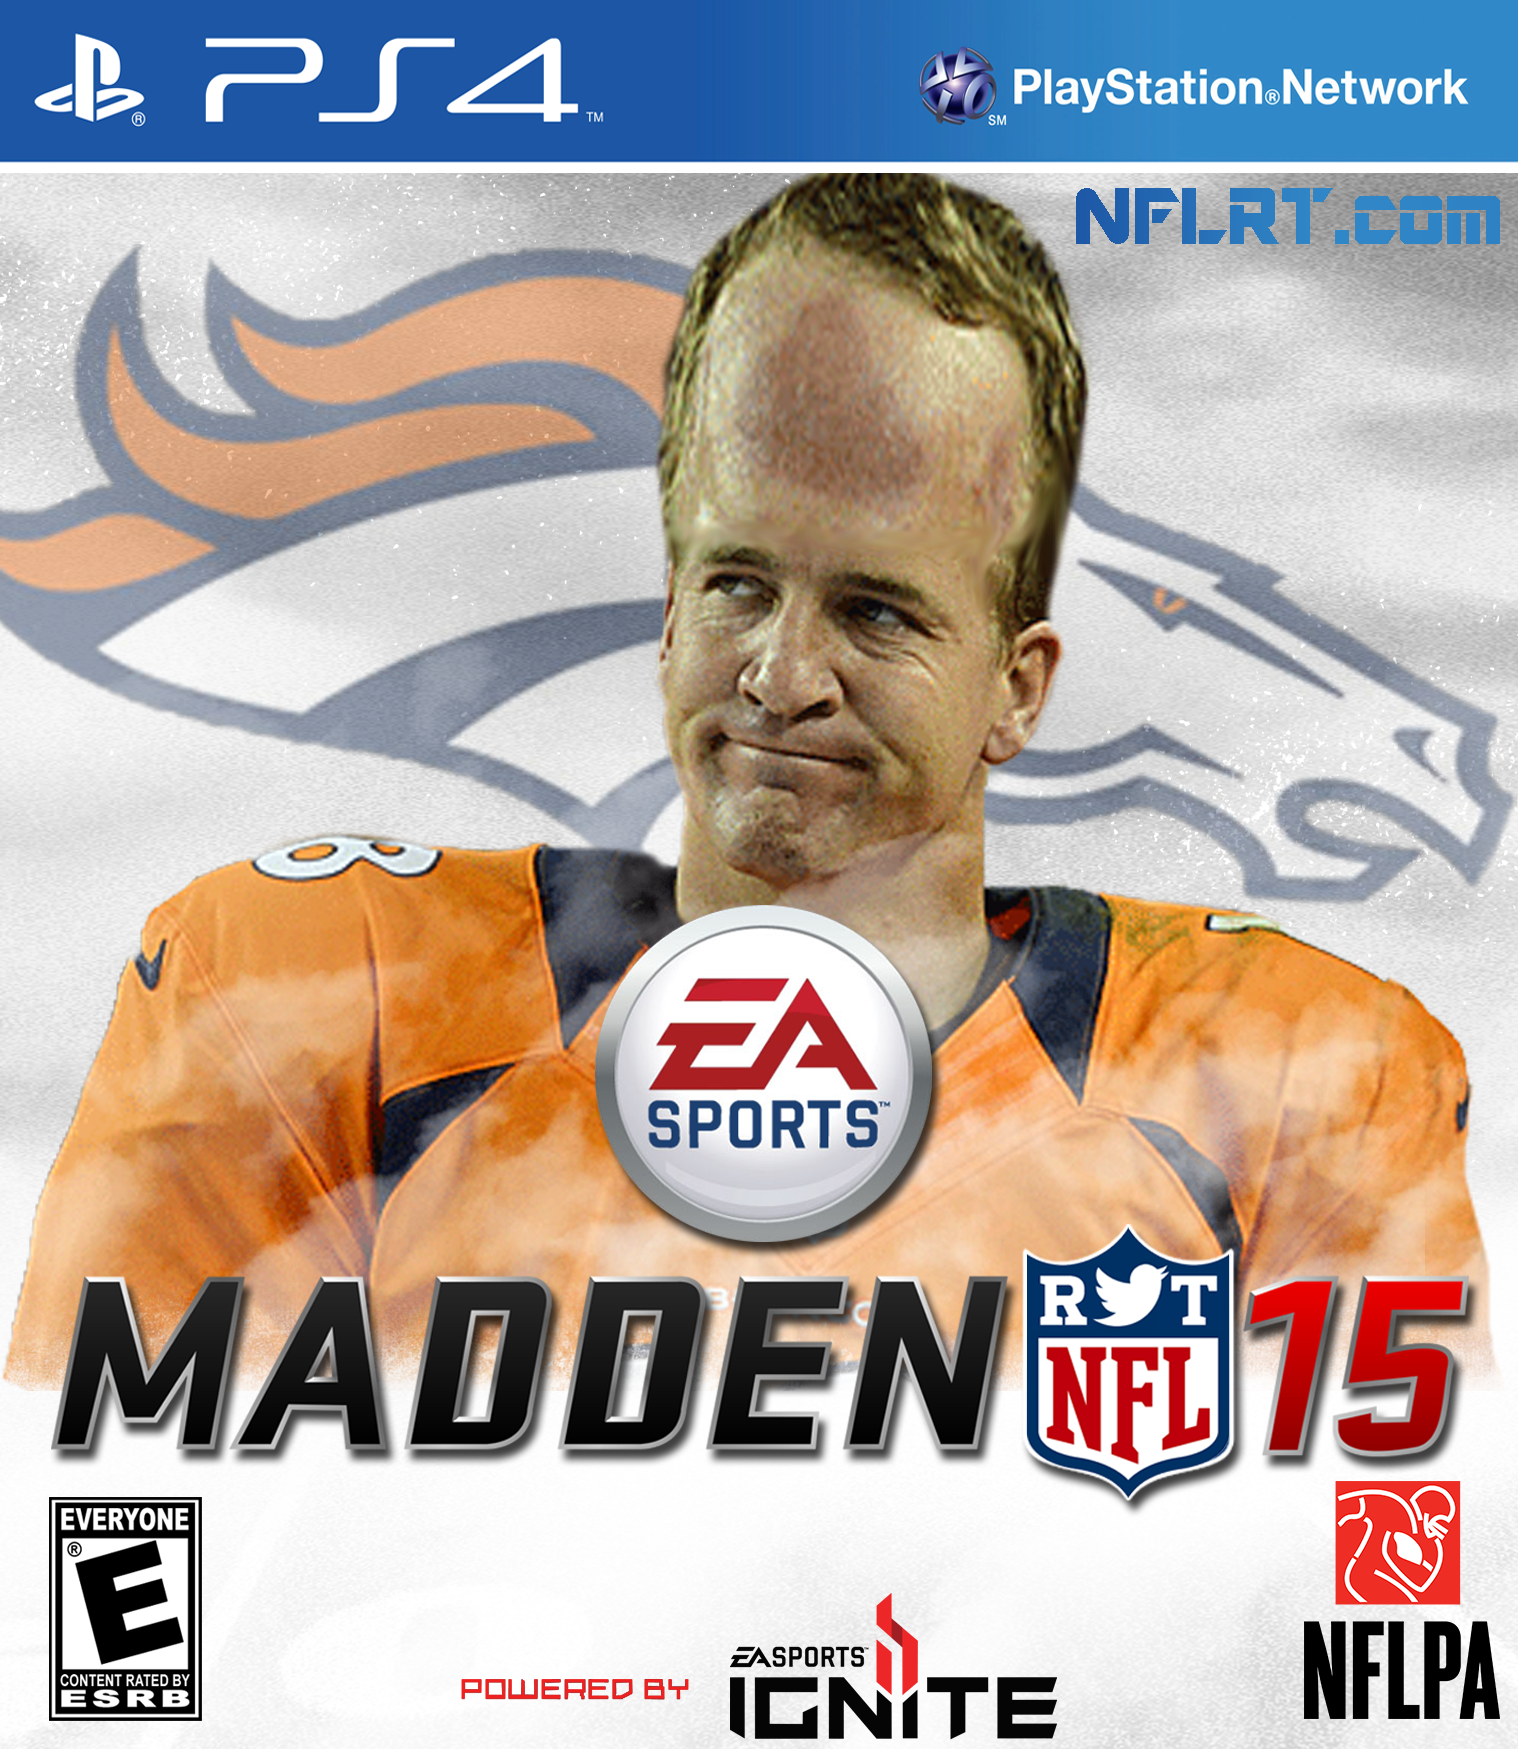 acbfcf243d9ea3ff880612ded45da32e what if madden hated your team sports pinterest,Funny Airplane Meme Peyton Manning